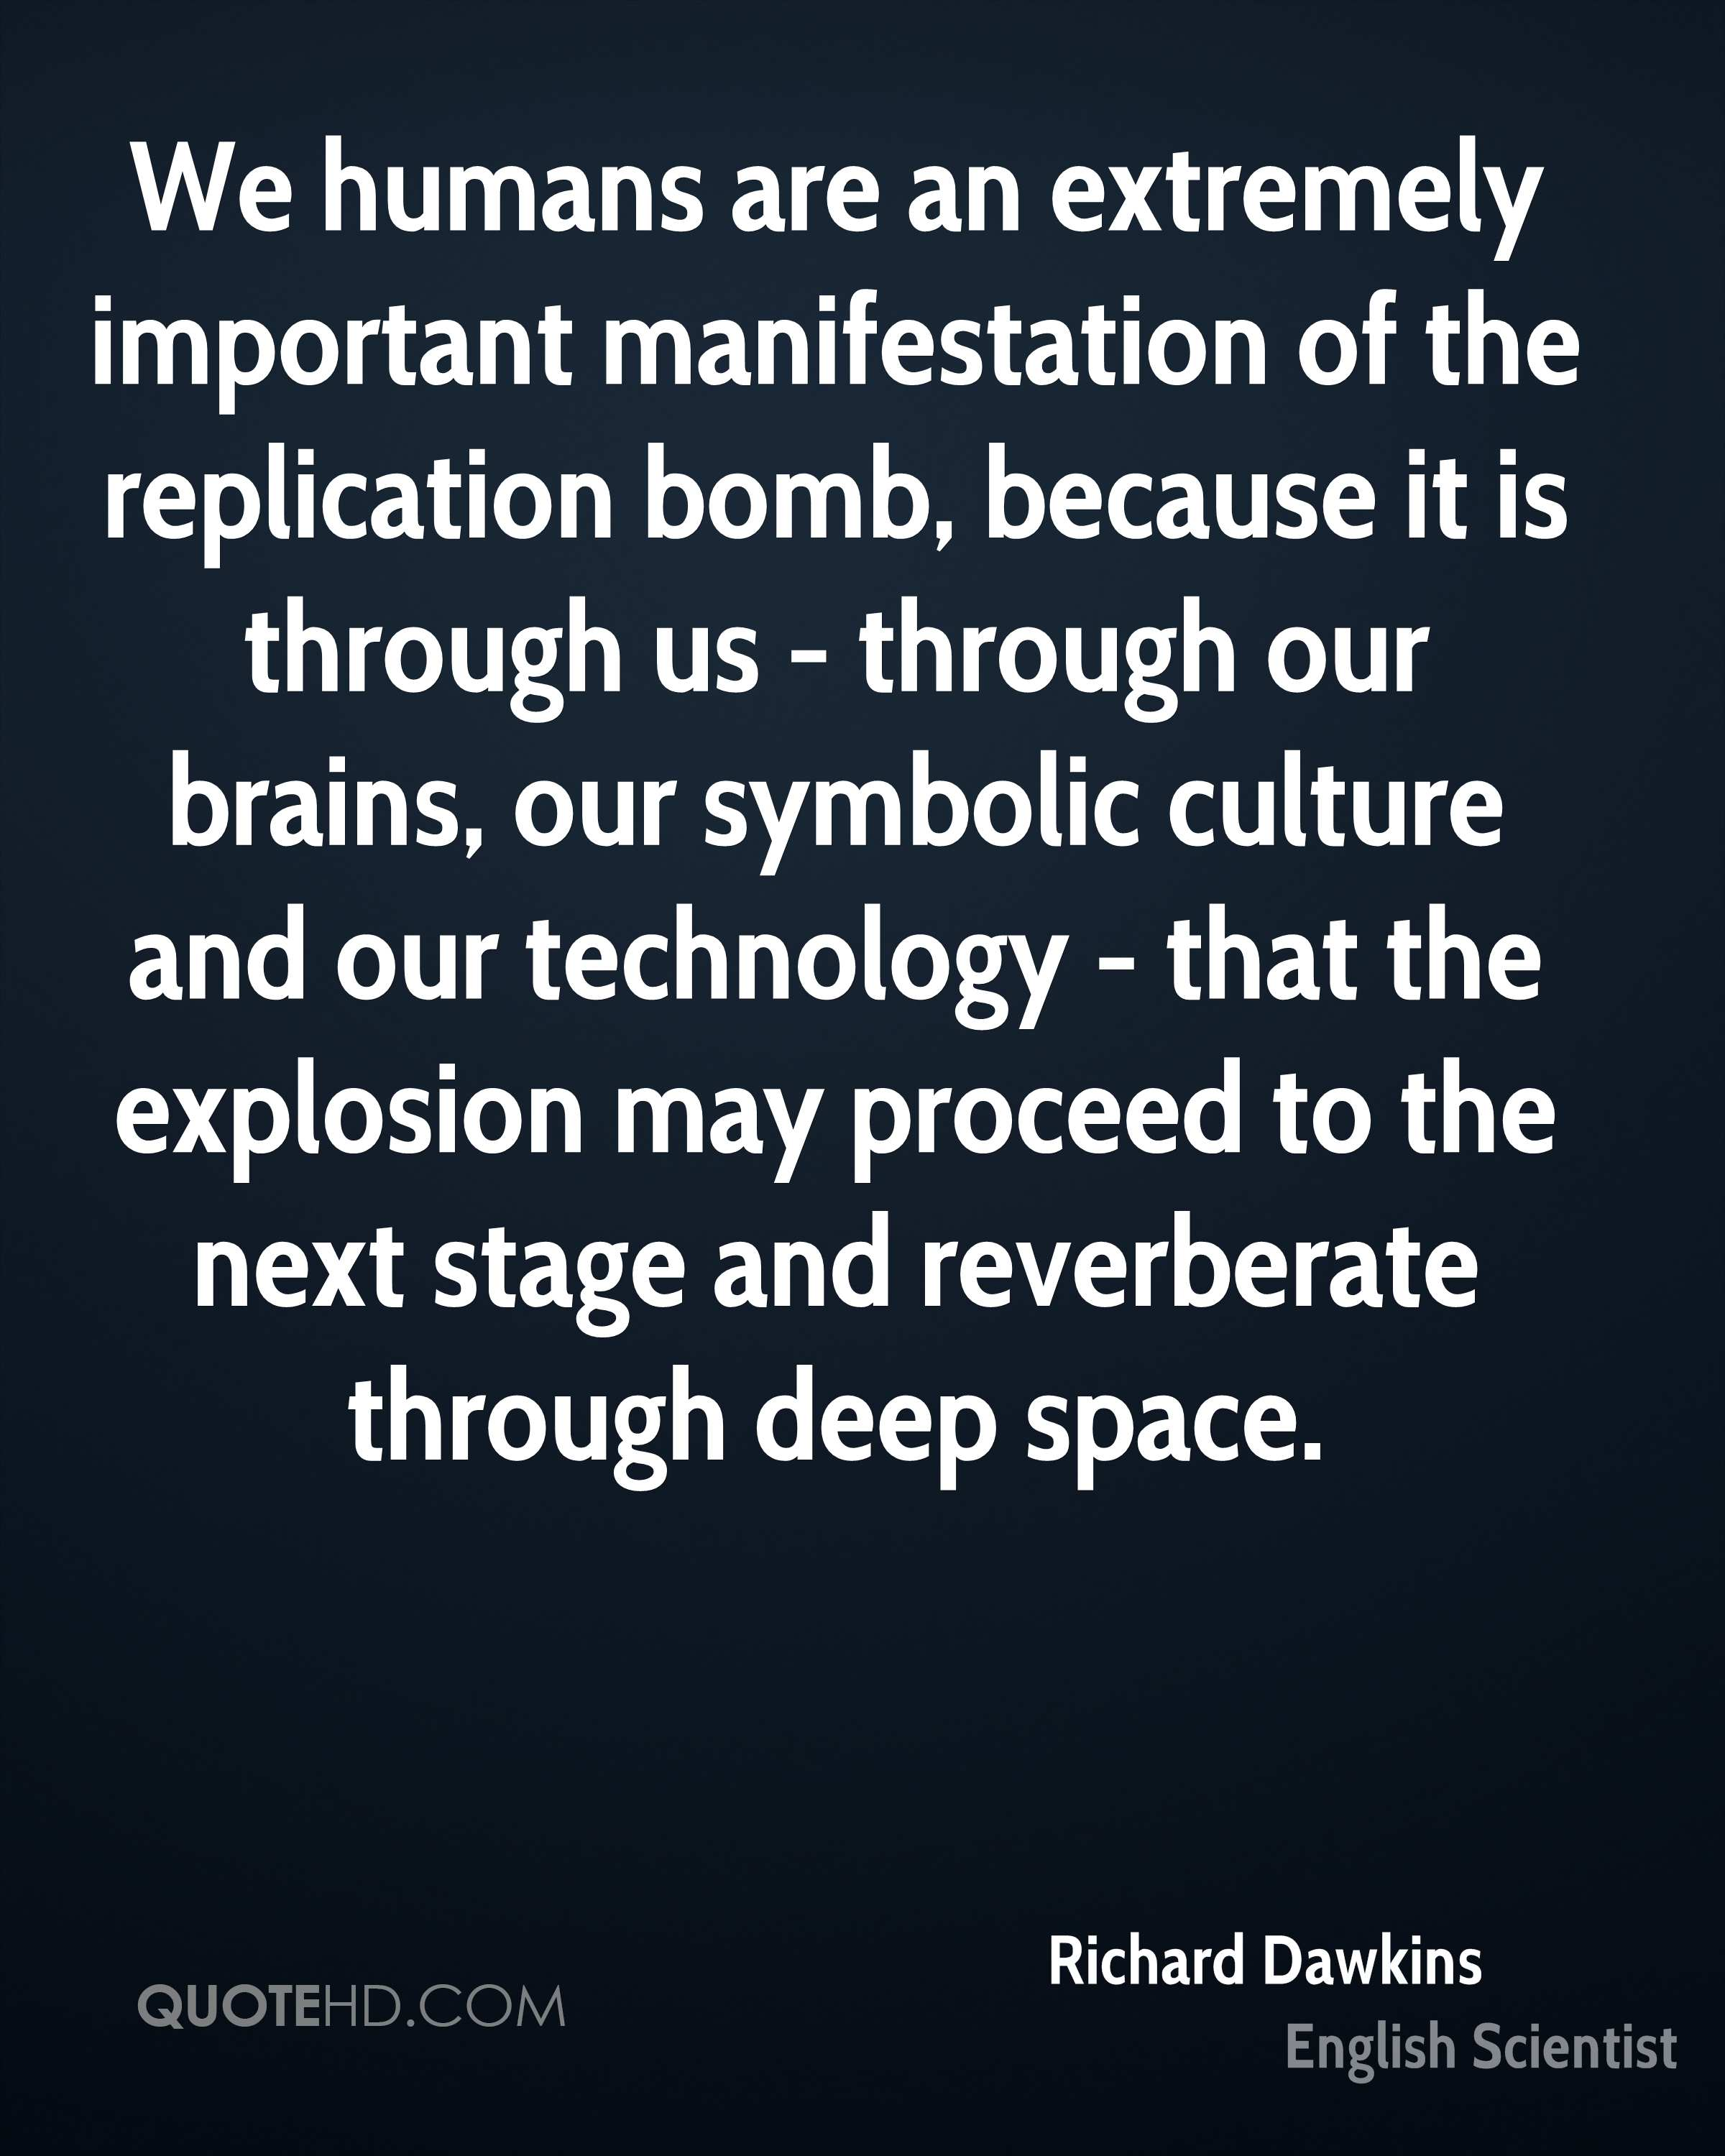 We humans are an extremely important manifestation of the replication bomb, because it is through us - through our brains, our symbolic culture and our technology - that the explosion may proceed to the next stage and reverberate through deep space.